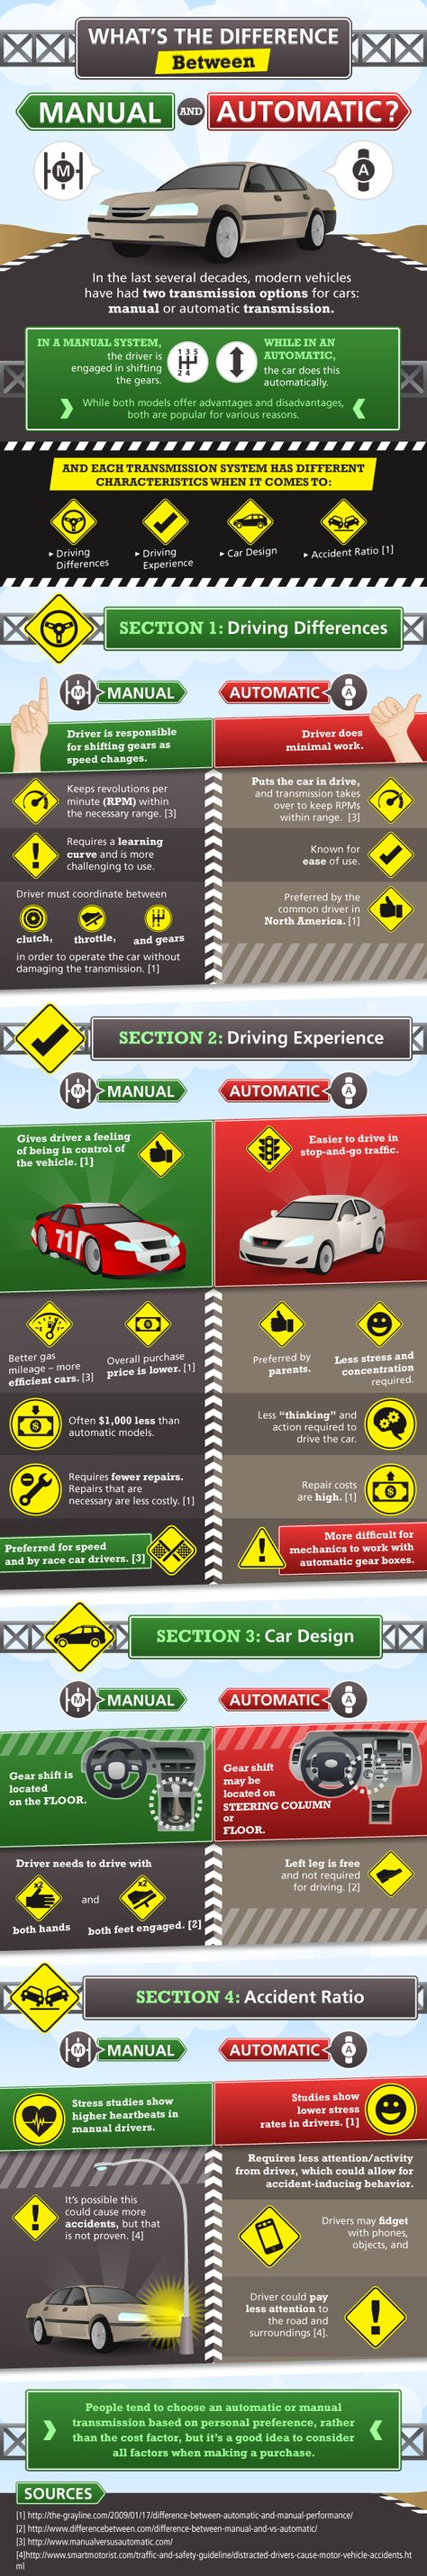 Safely Drive Manual Vs Automatic Cars Manual Guide